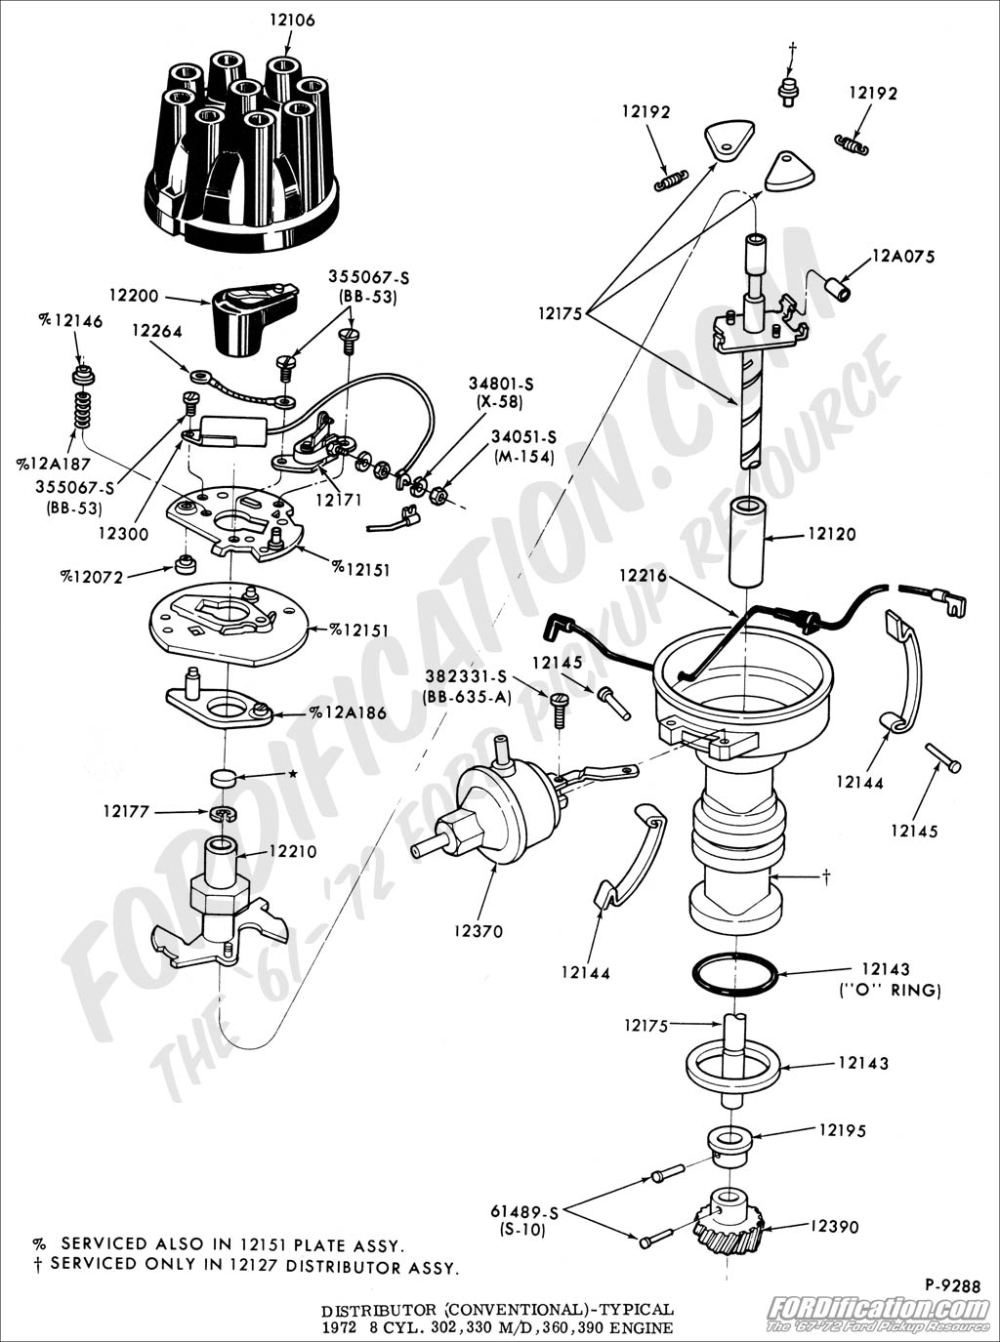 medium resolution of ford 360 v8 engine diagram wiring diagram mix 390 ford engine diagram wiring diagrams390 ford engine